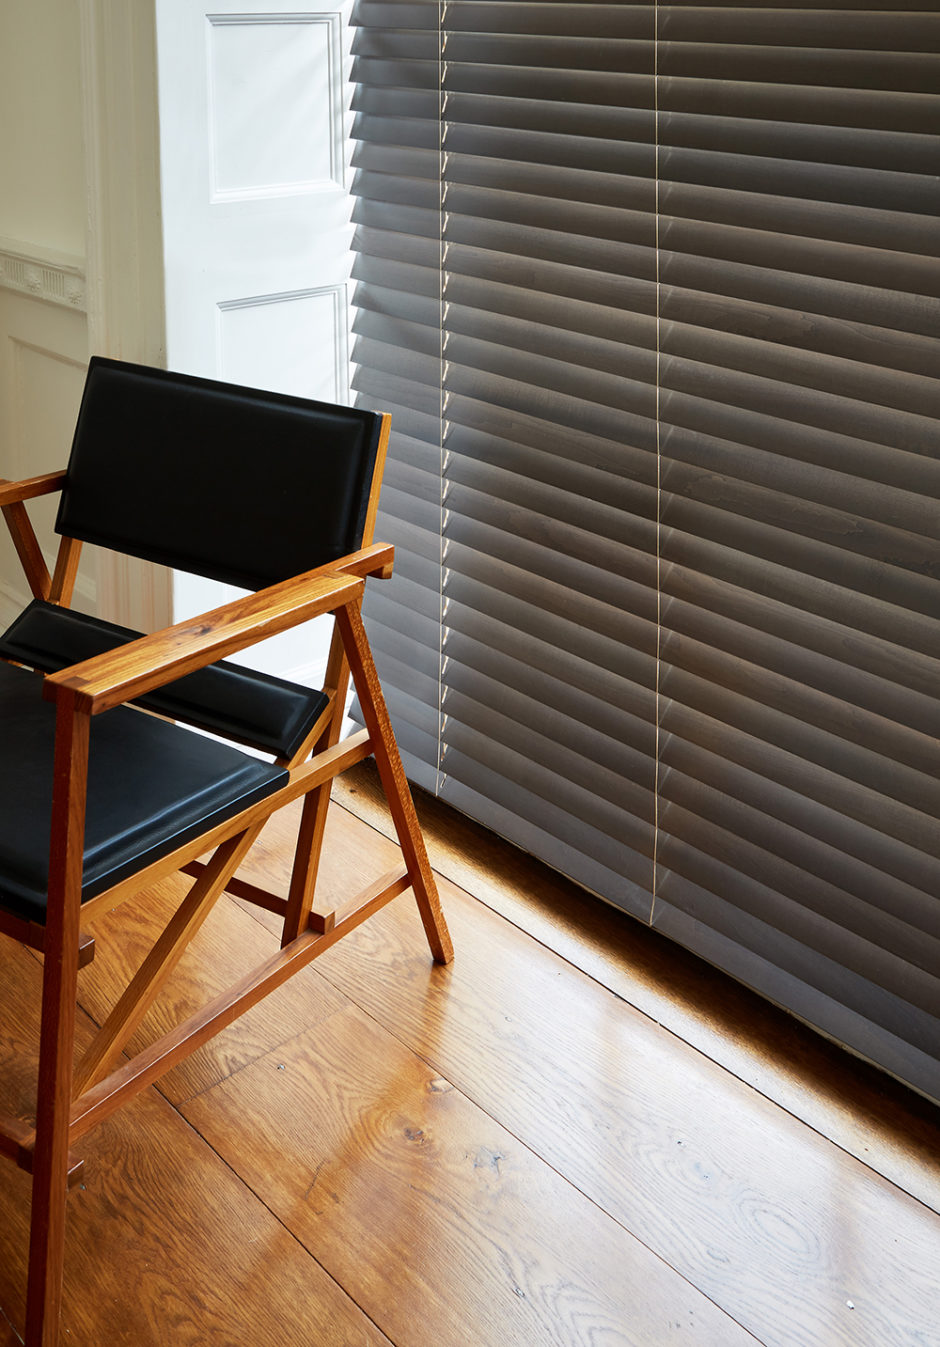 Wooden Door Blinds Wooden Blinds For Patio Doors Wooden Blinds Direct